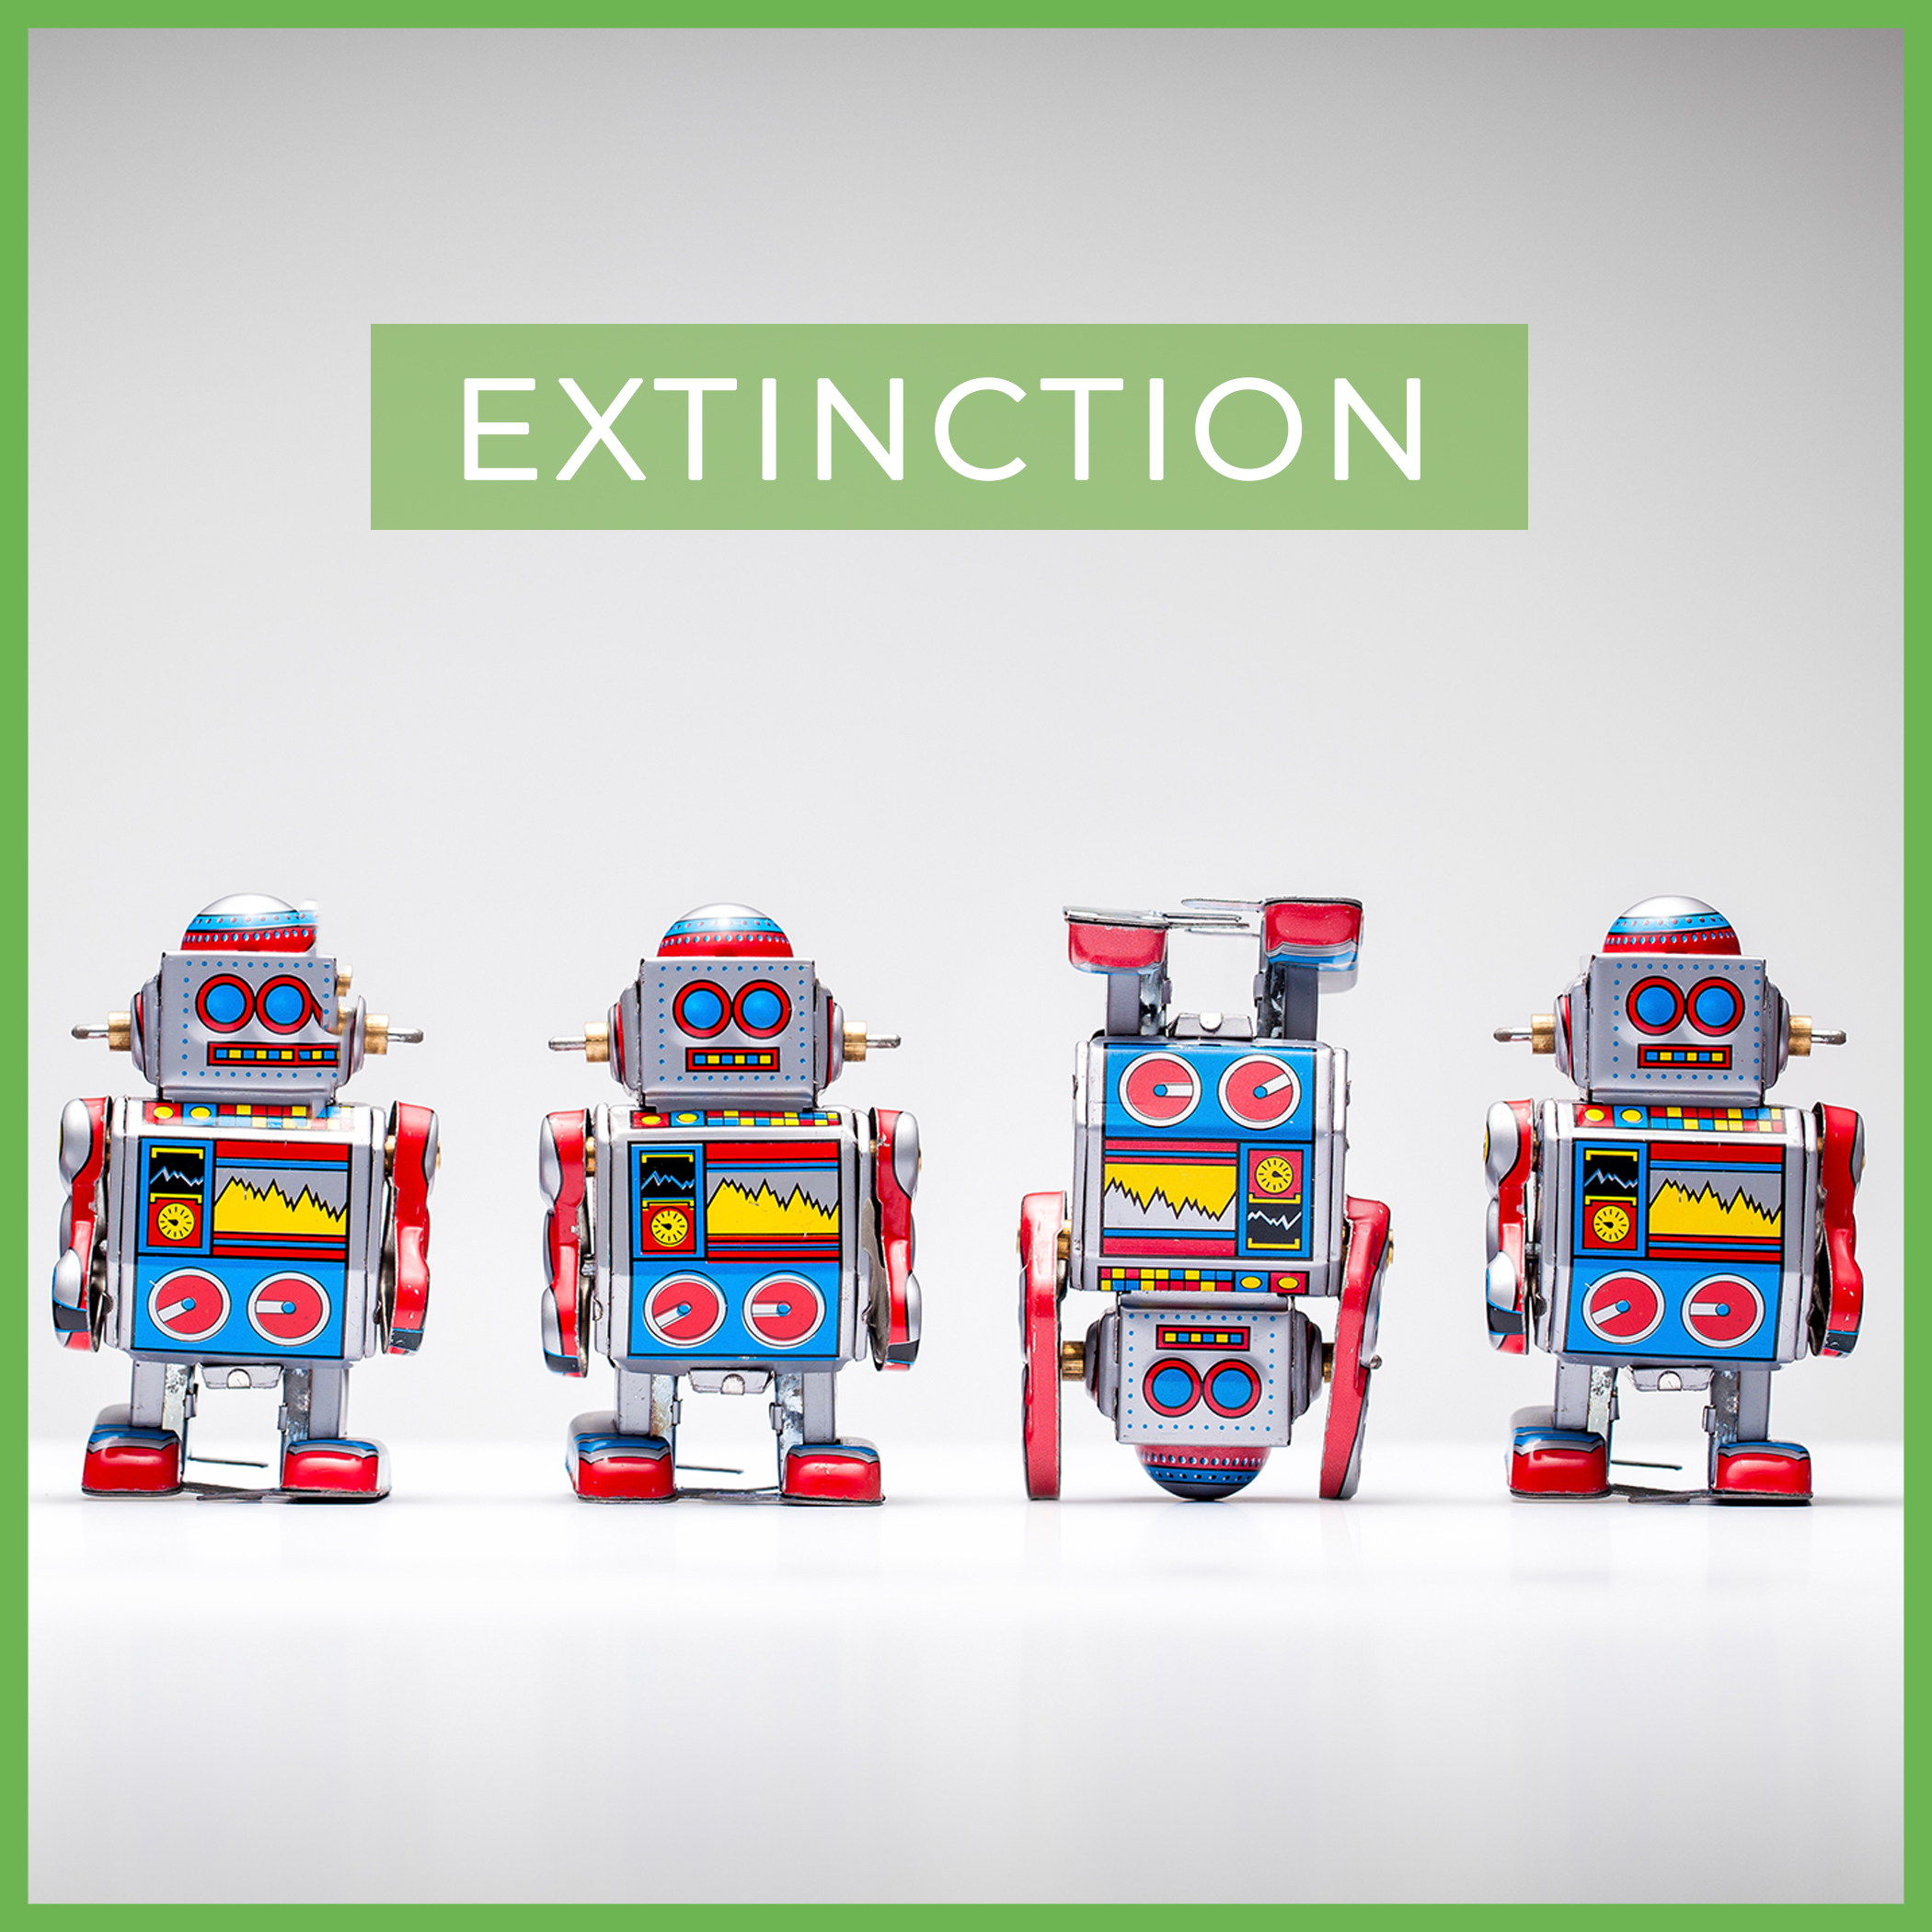 extinction-aba-therapy-blog-autism-cultivate.jpg